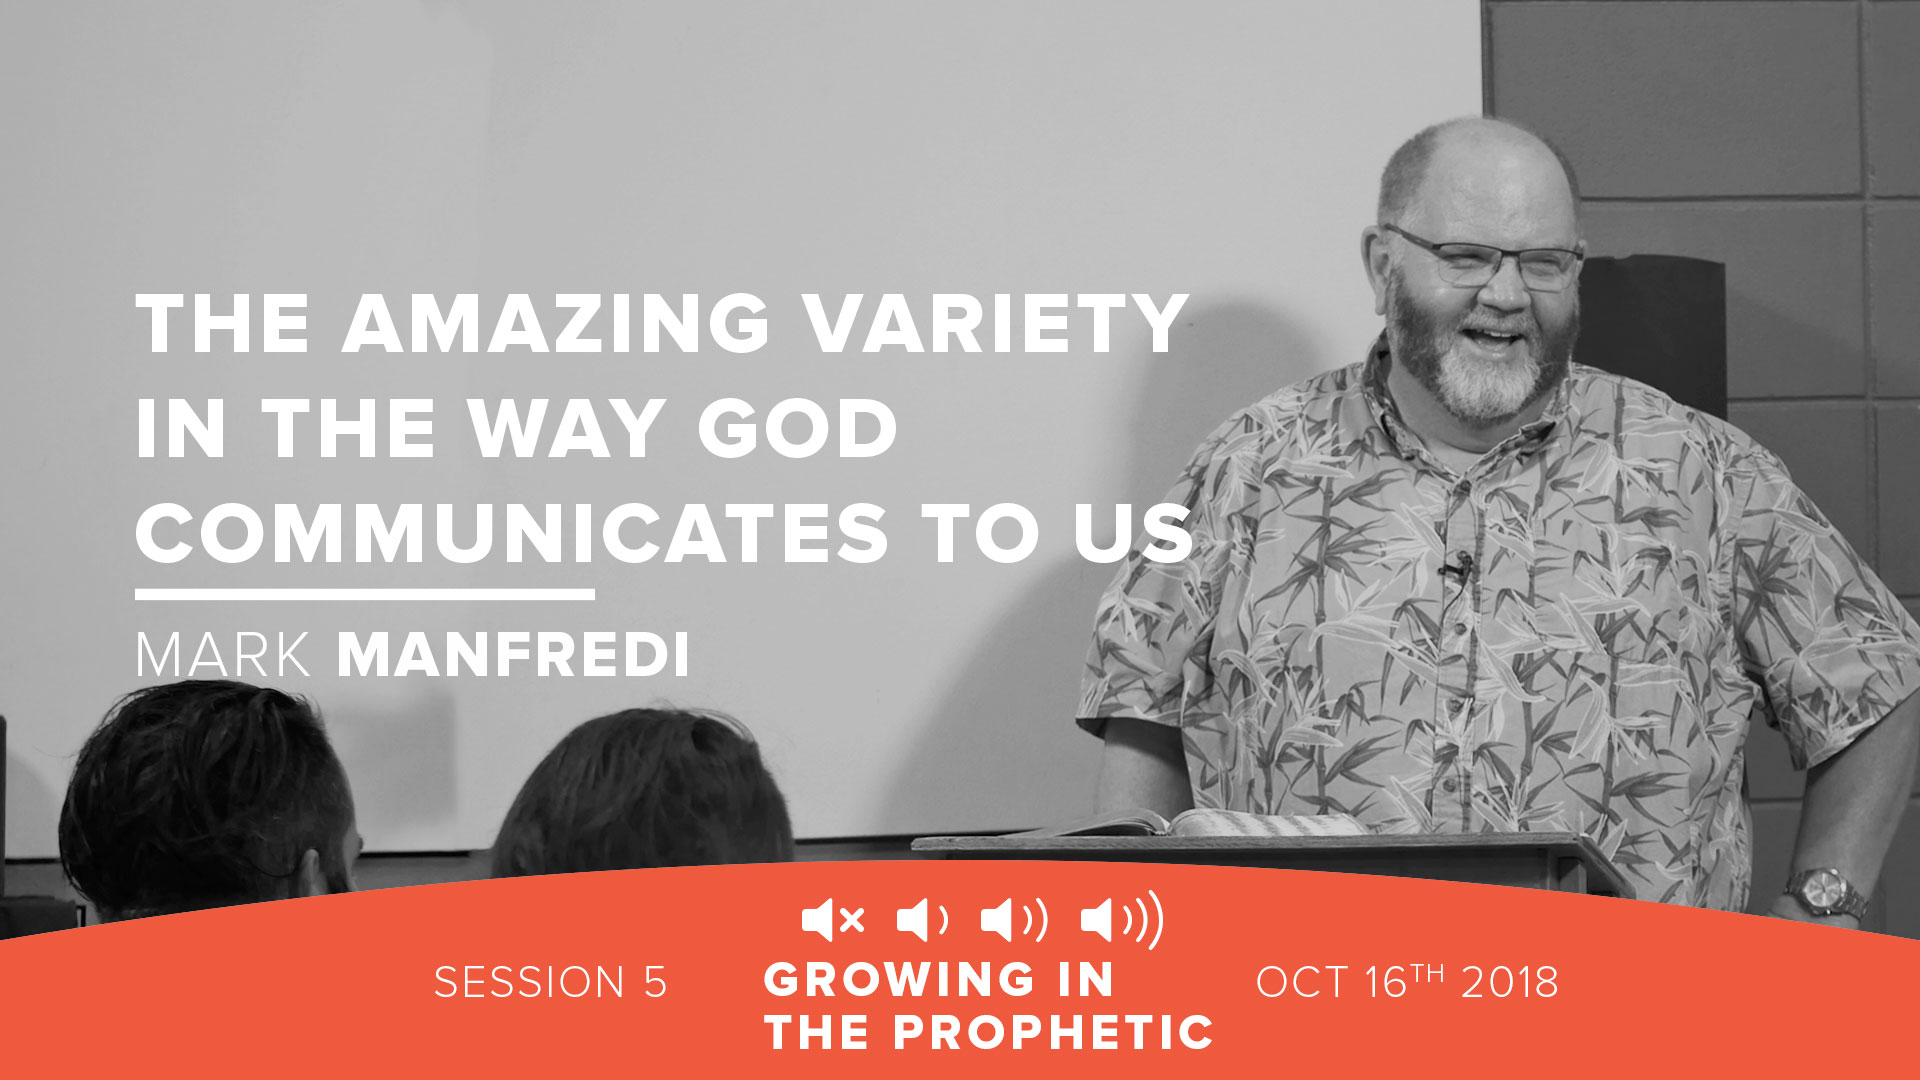 The Amazing Variety in the Way God Communicates to Us